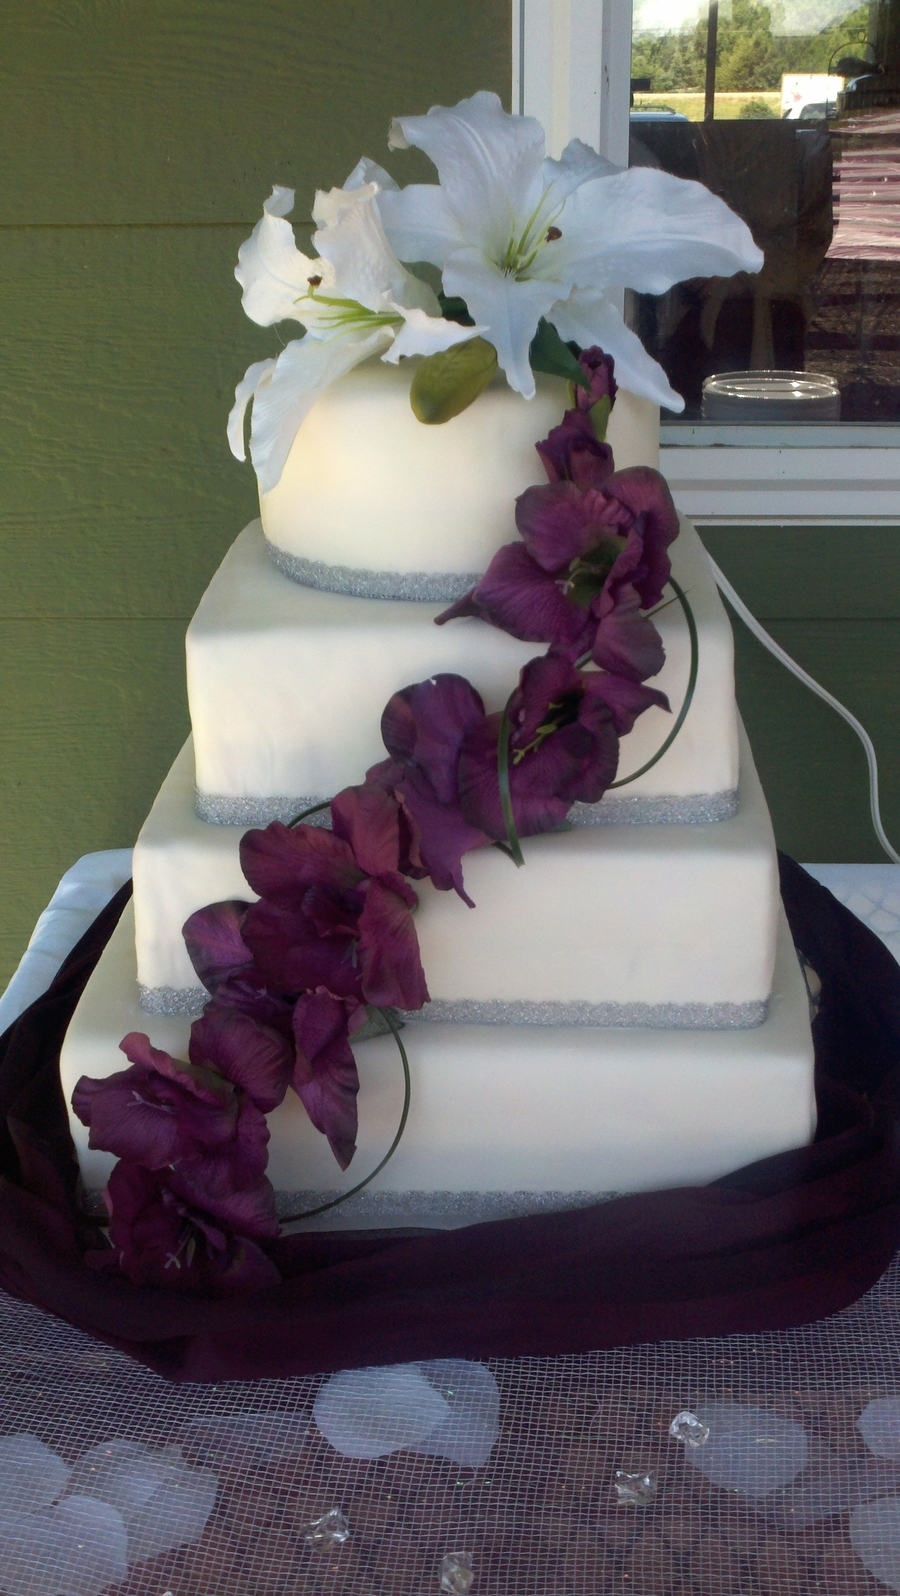 Square And Round Wedding Cake With White And Purple